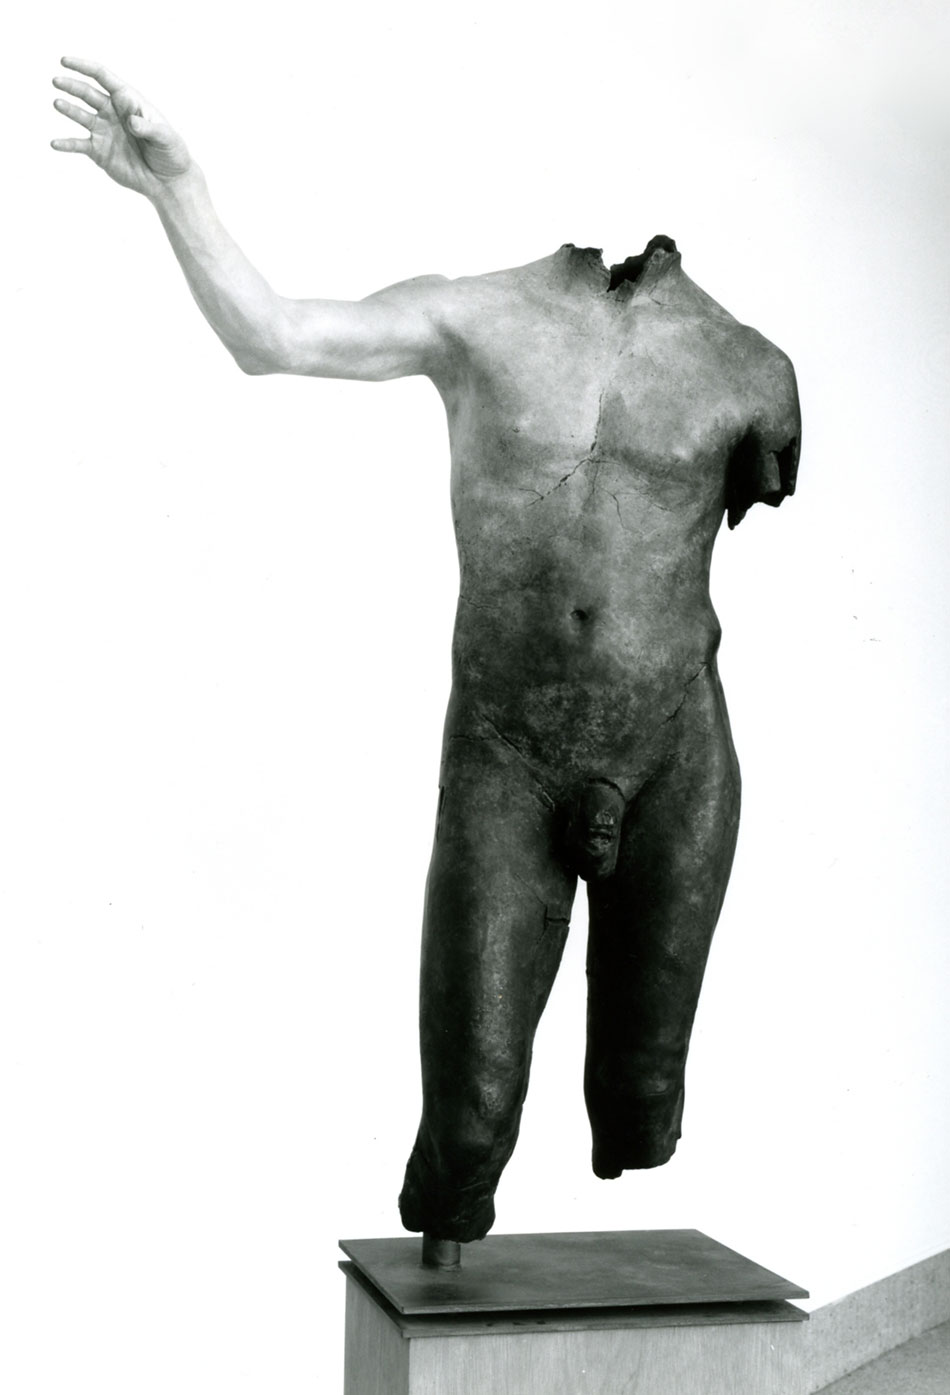 fig. 3 – Evan Penny (Canadian b. 1953), Shadow Torso 1985, oil, bronze, Gift of Ron Kaplansky, 1990.